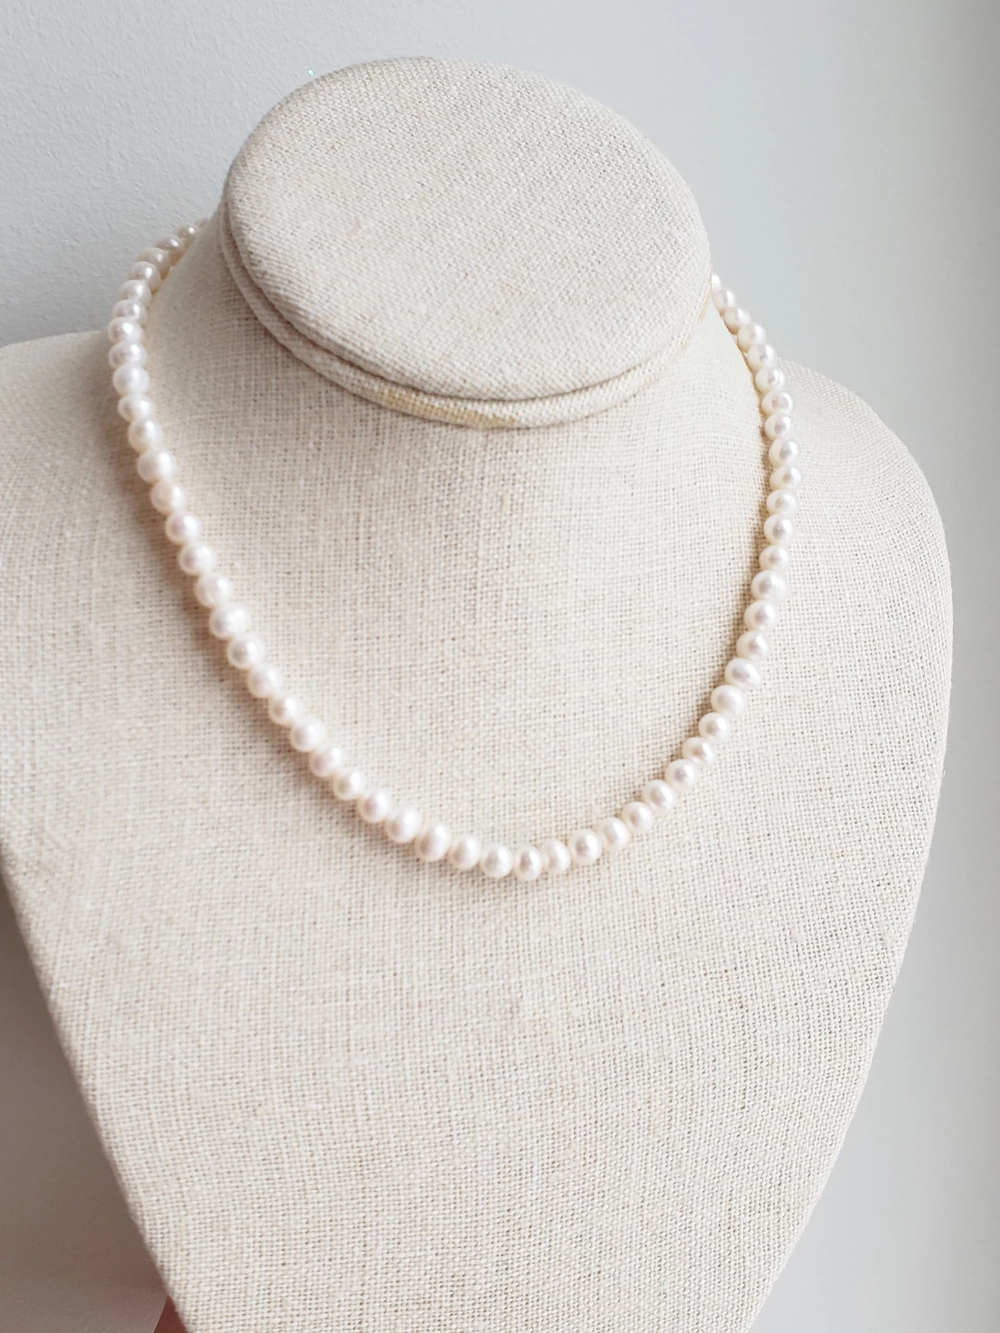 Classic Pearl Necklace in Ivory Freshwater Pearls